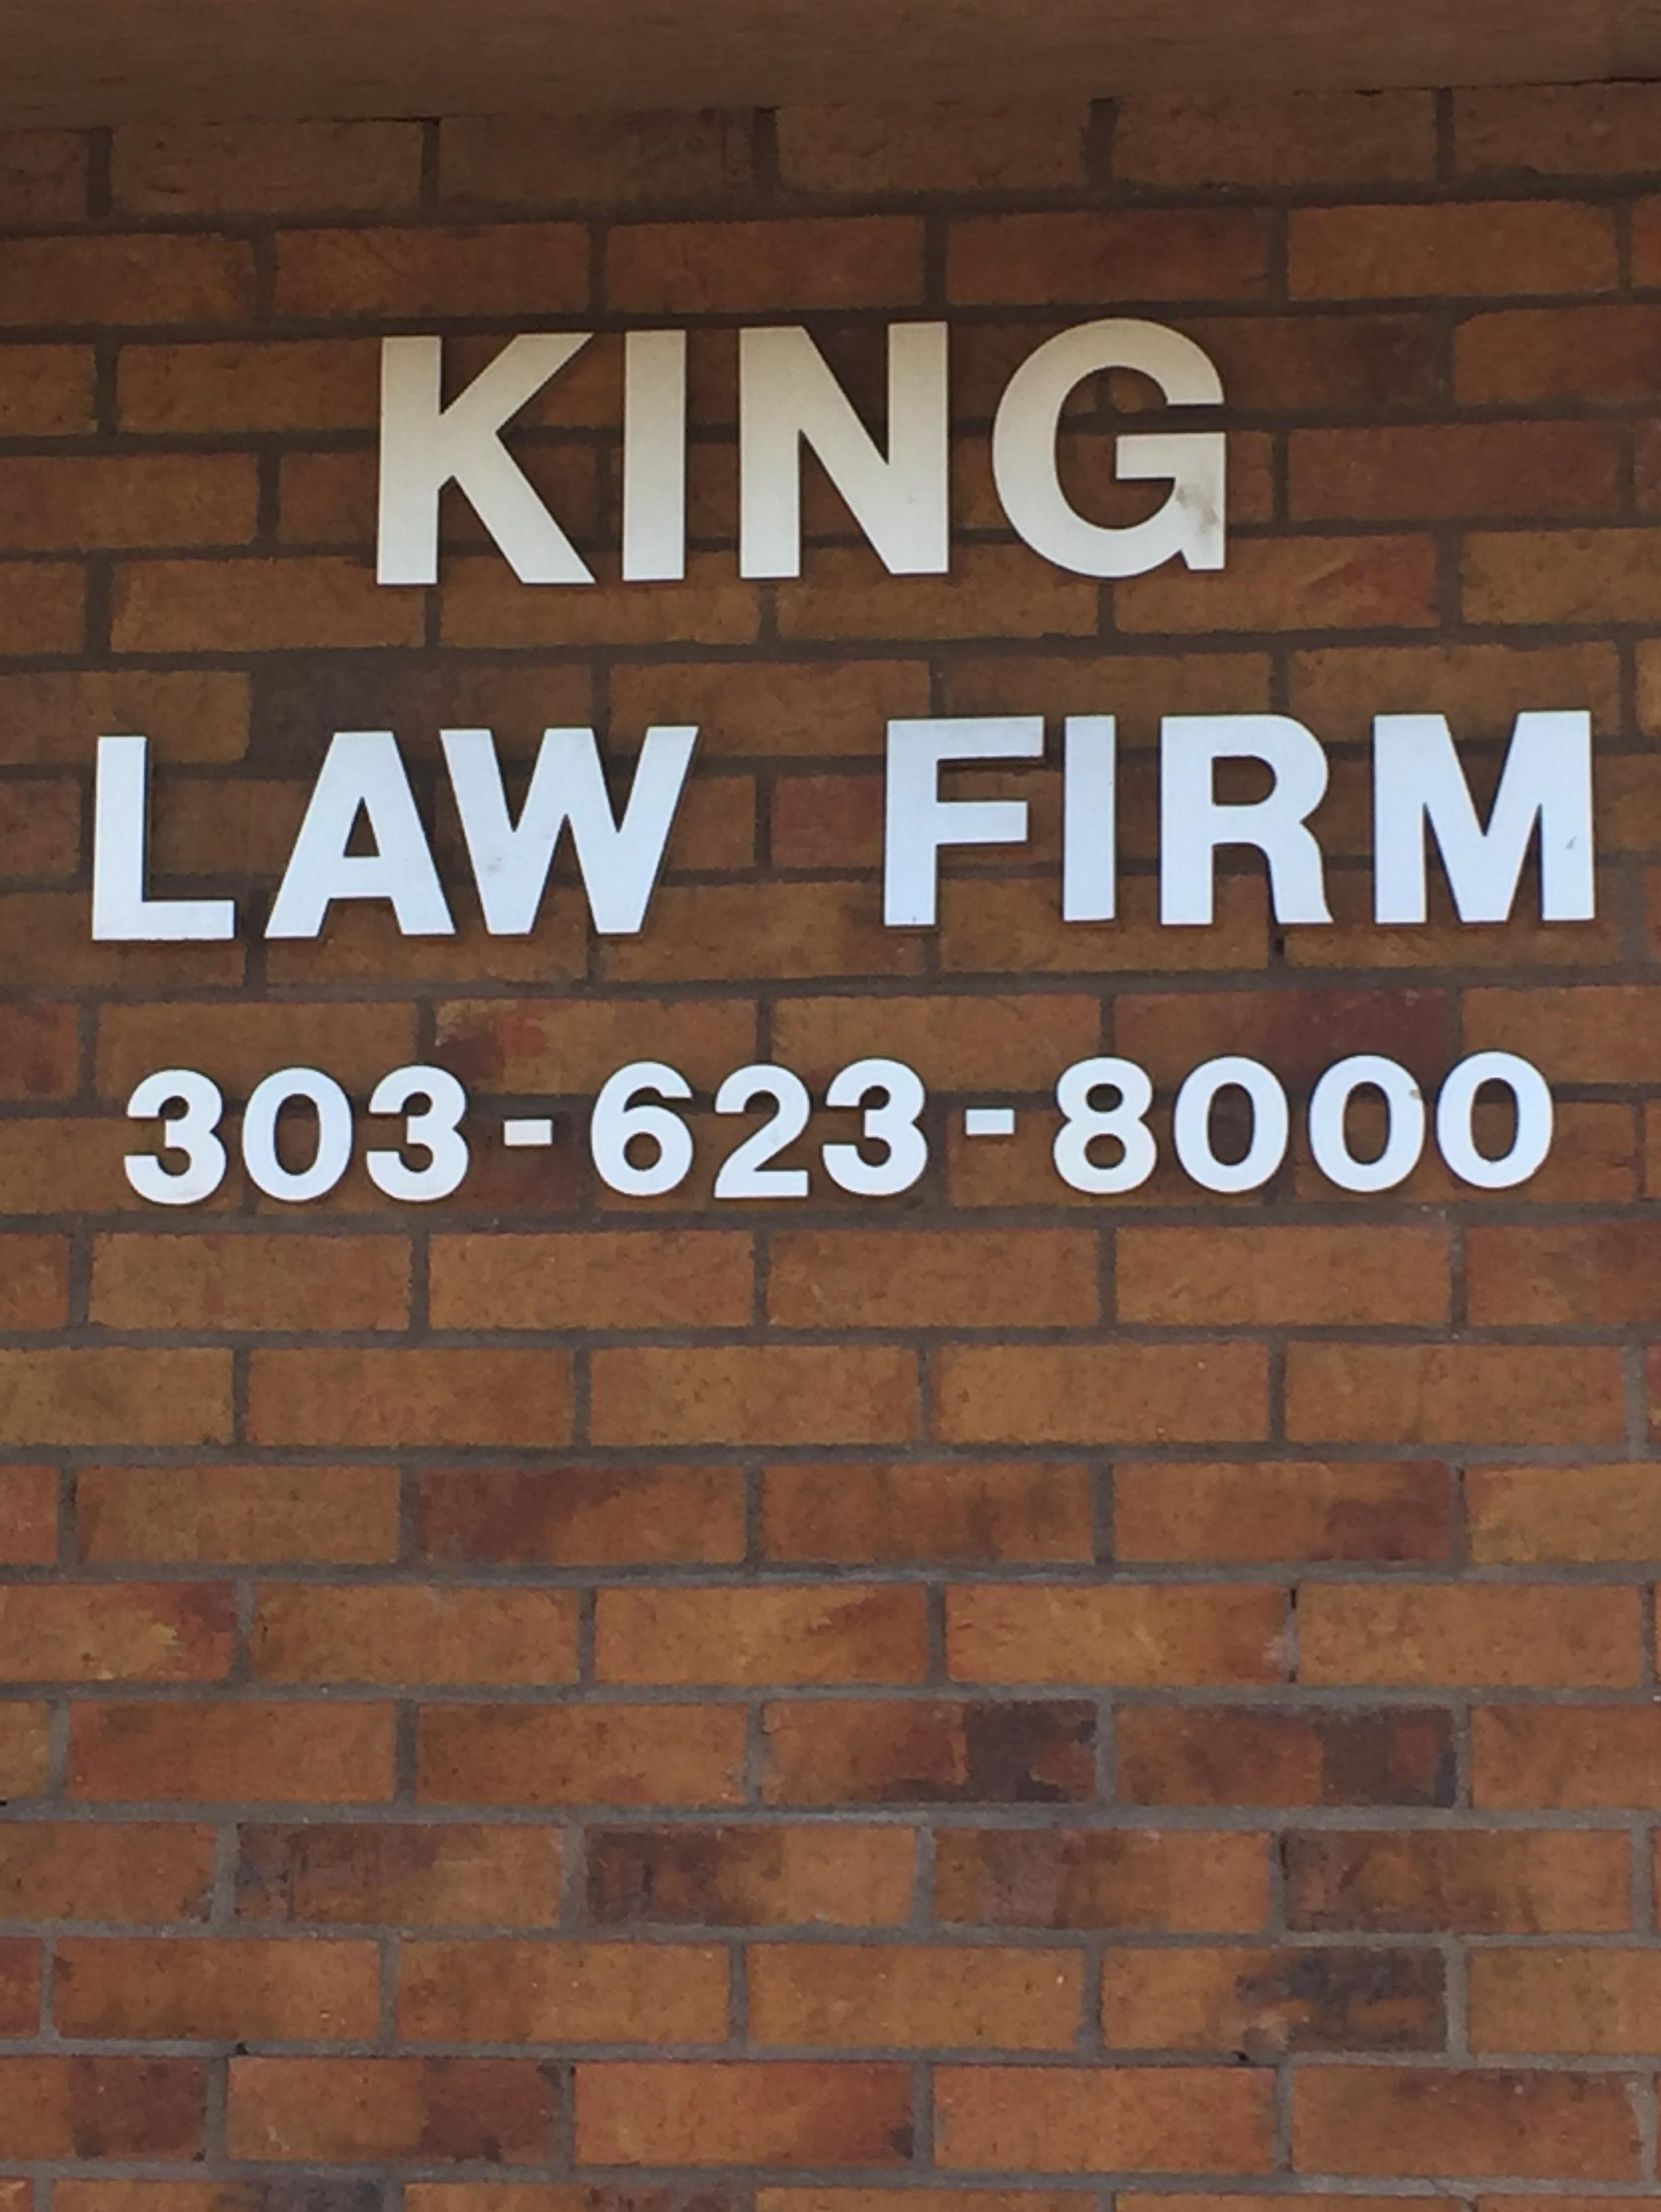 Welcome to King Law Firm